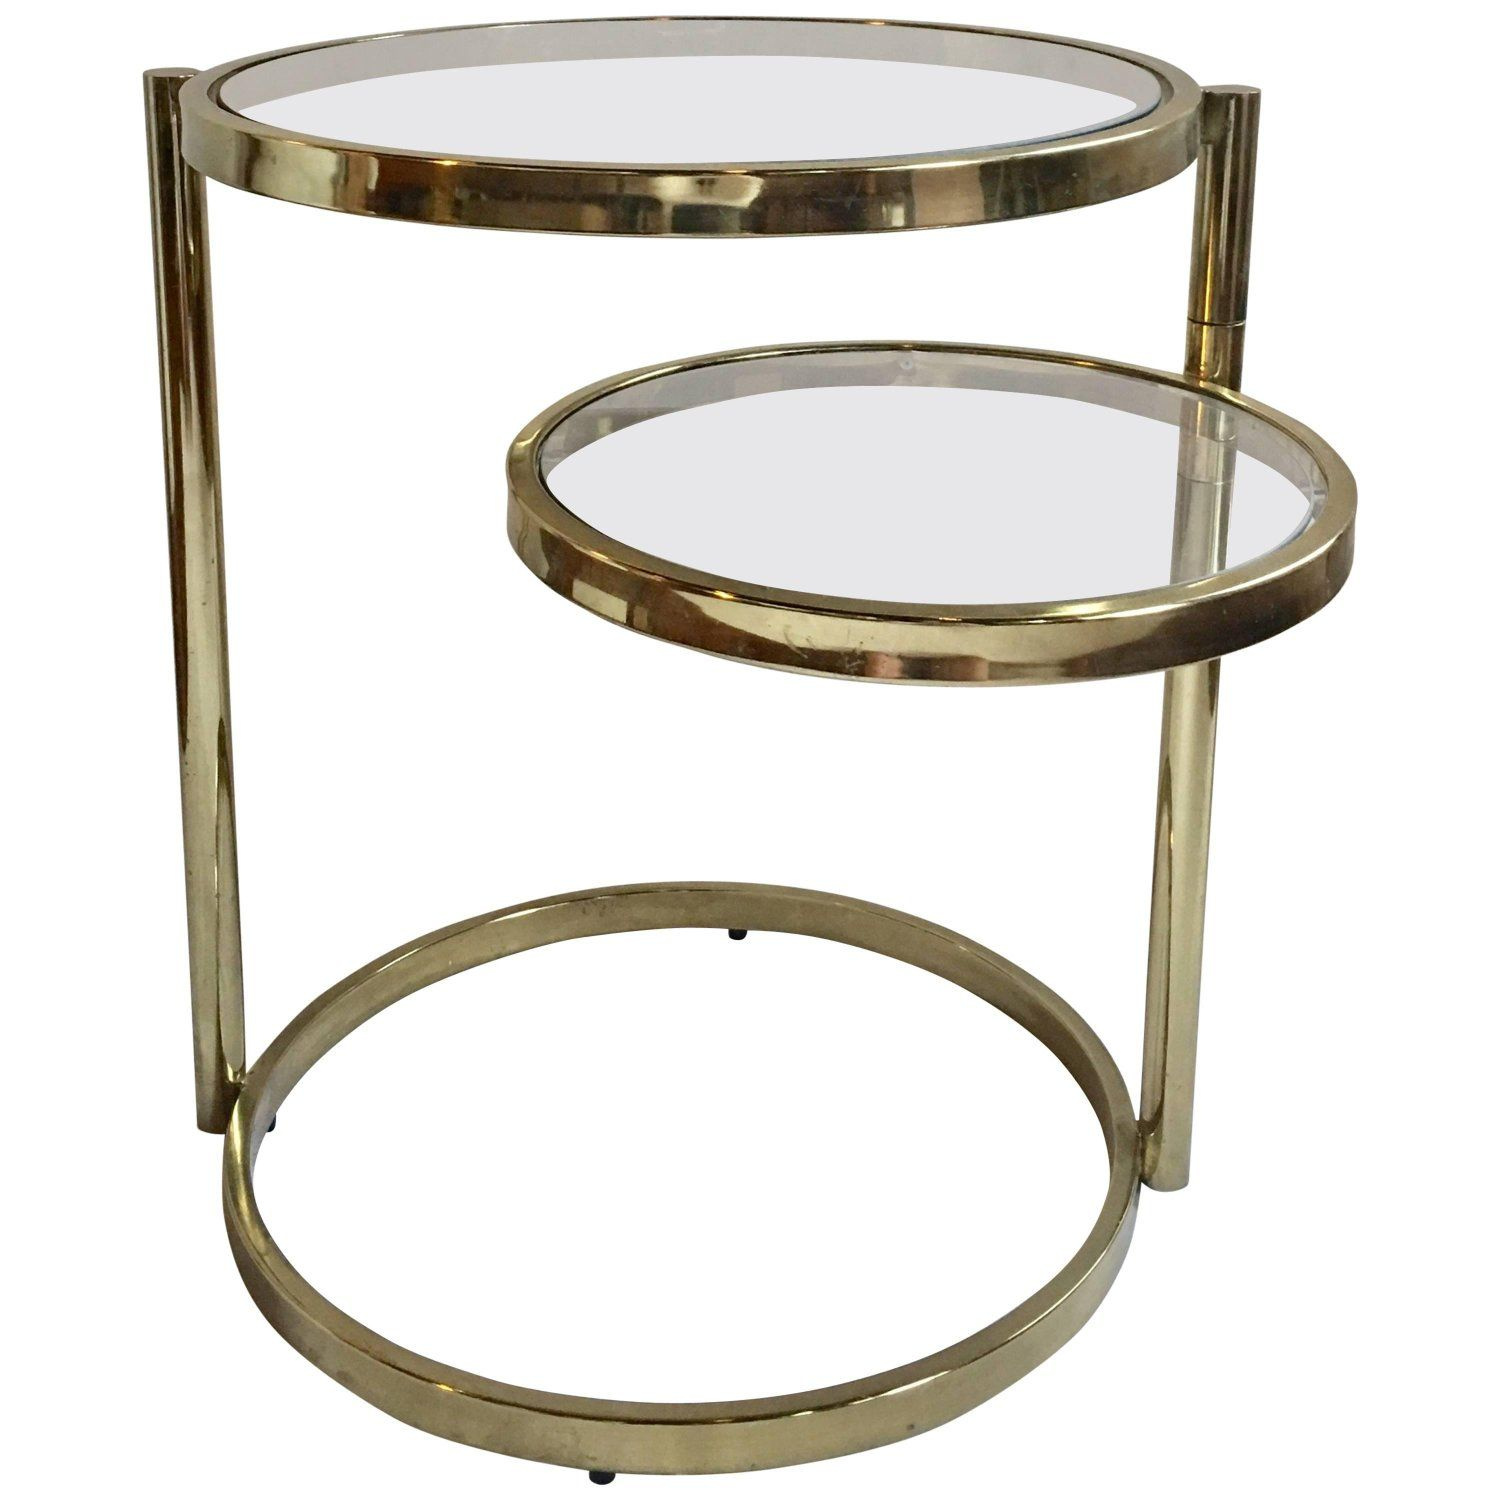 1970s Milo Baughman Style Articulating Brass Side Table With Swiveling Tier Coffee Table Brass Side Table Side Table [ 1500 x 1500 Pixel ]